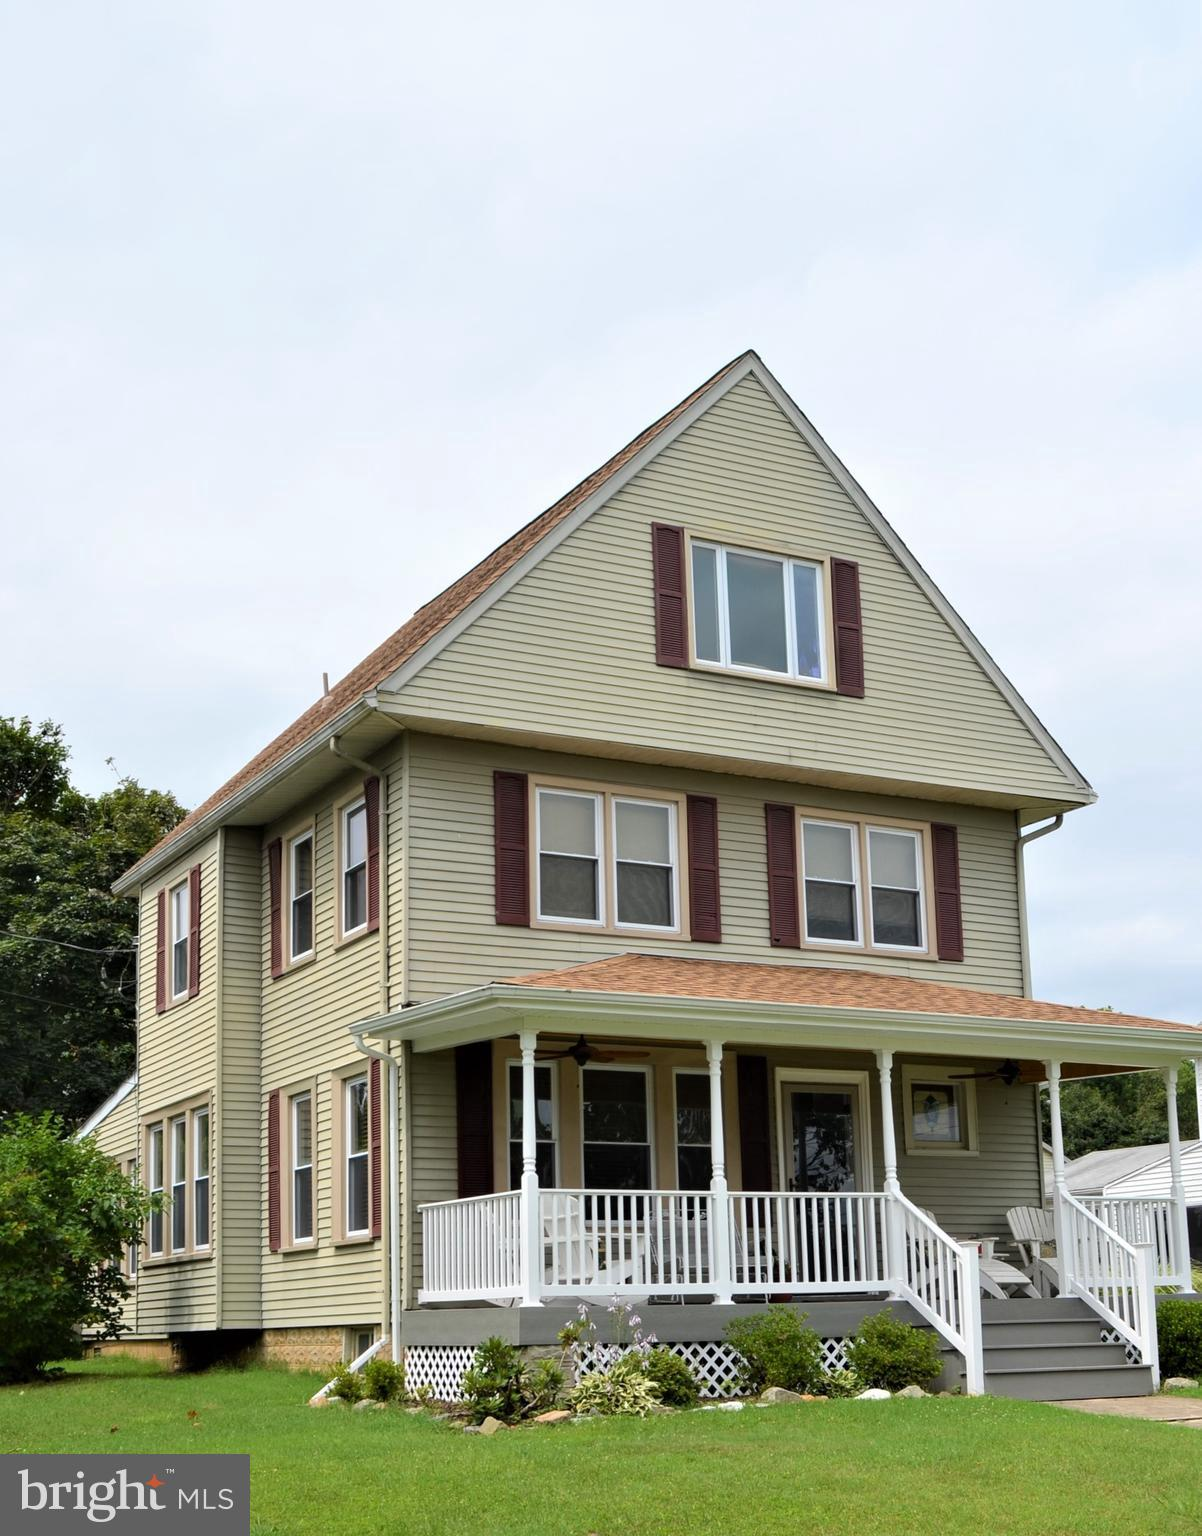 Charm and Character fill this early 1900's era home in the ever so desired Town of South Chesapeake